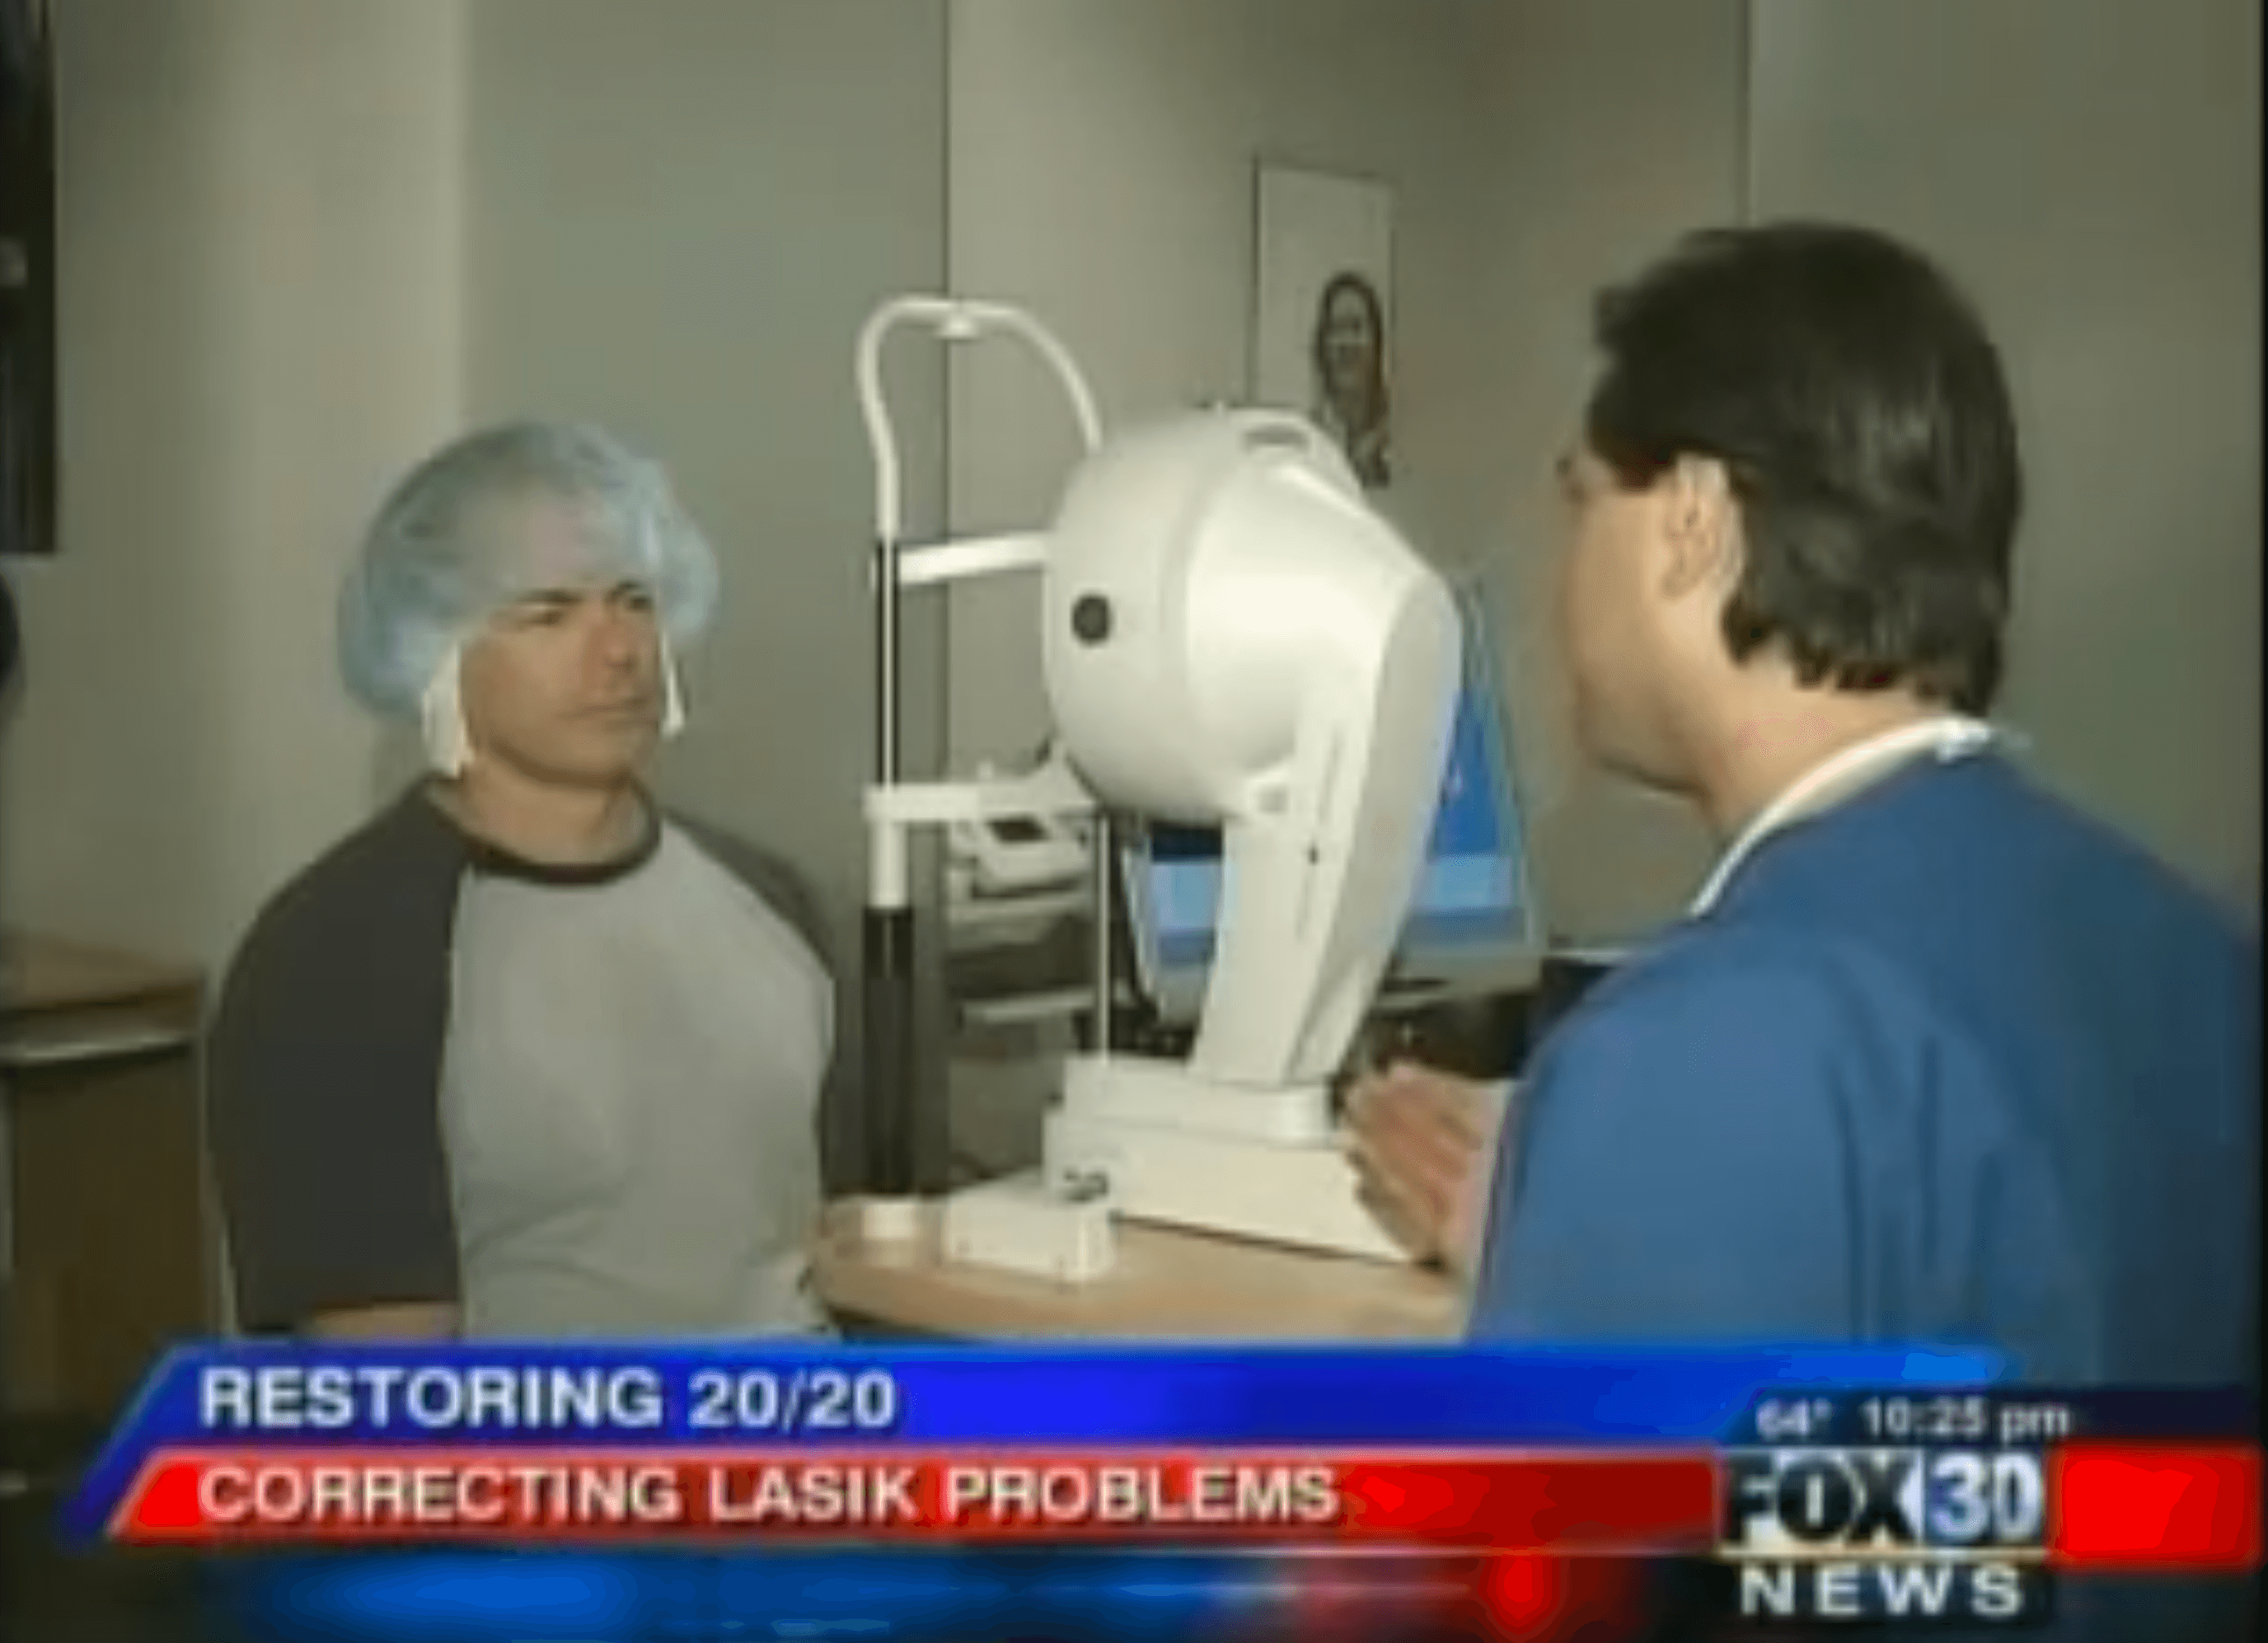 Police Officer Lasik Complication Fox News interview